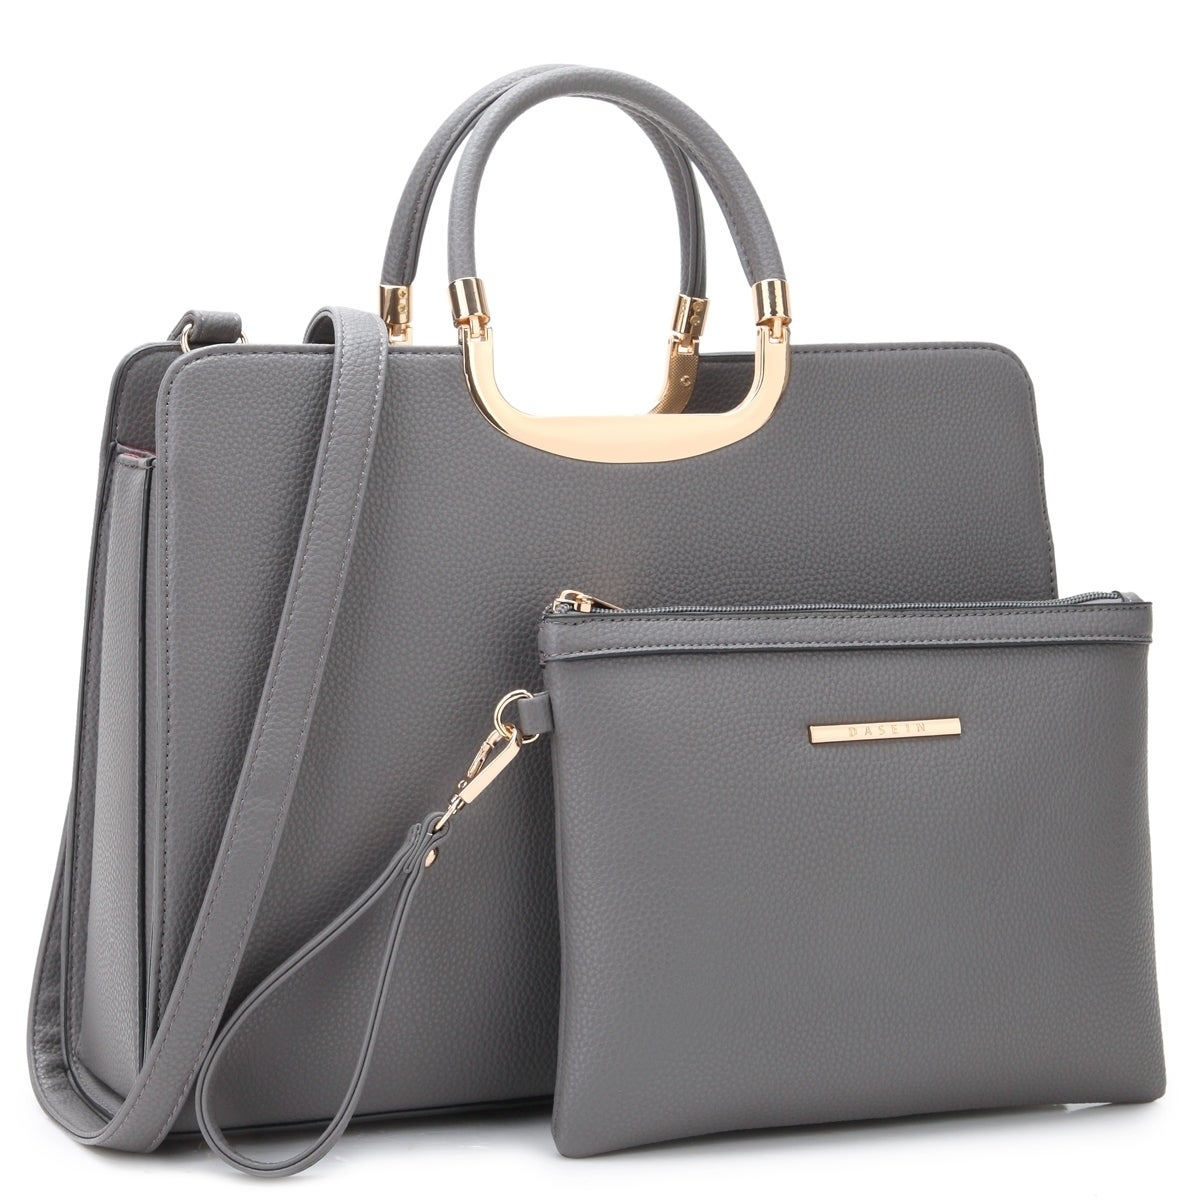 Grey Handbags Our Best Clothing Shoes Deals Online At